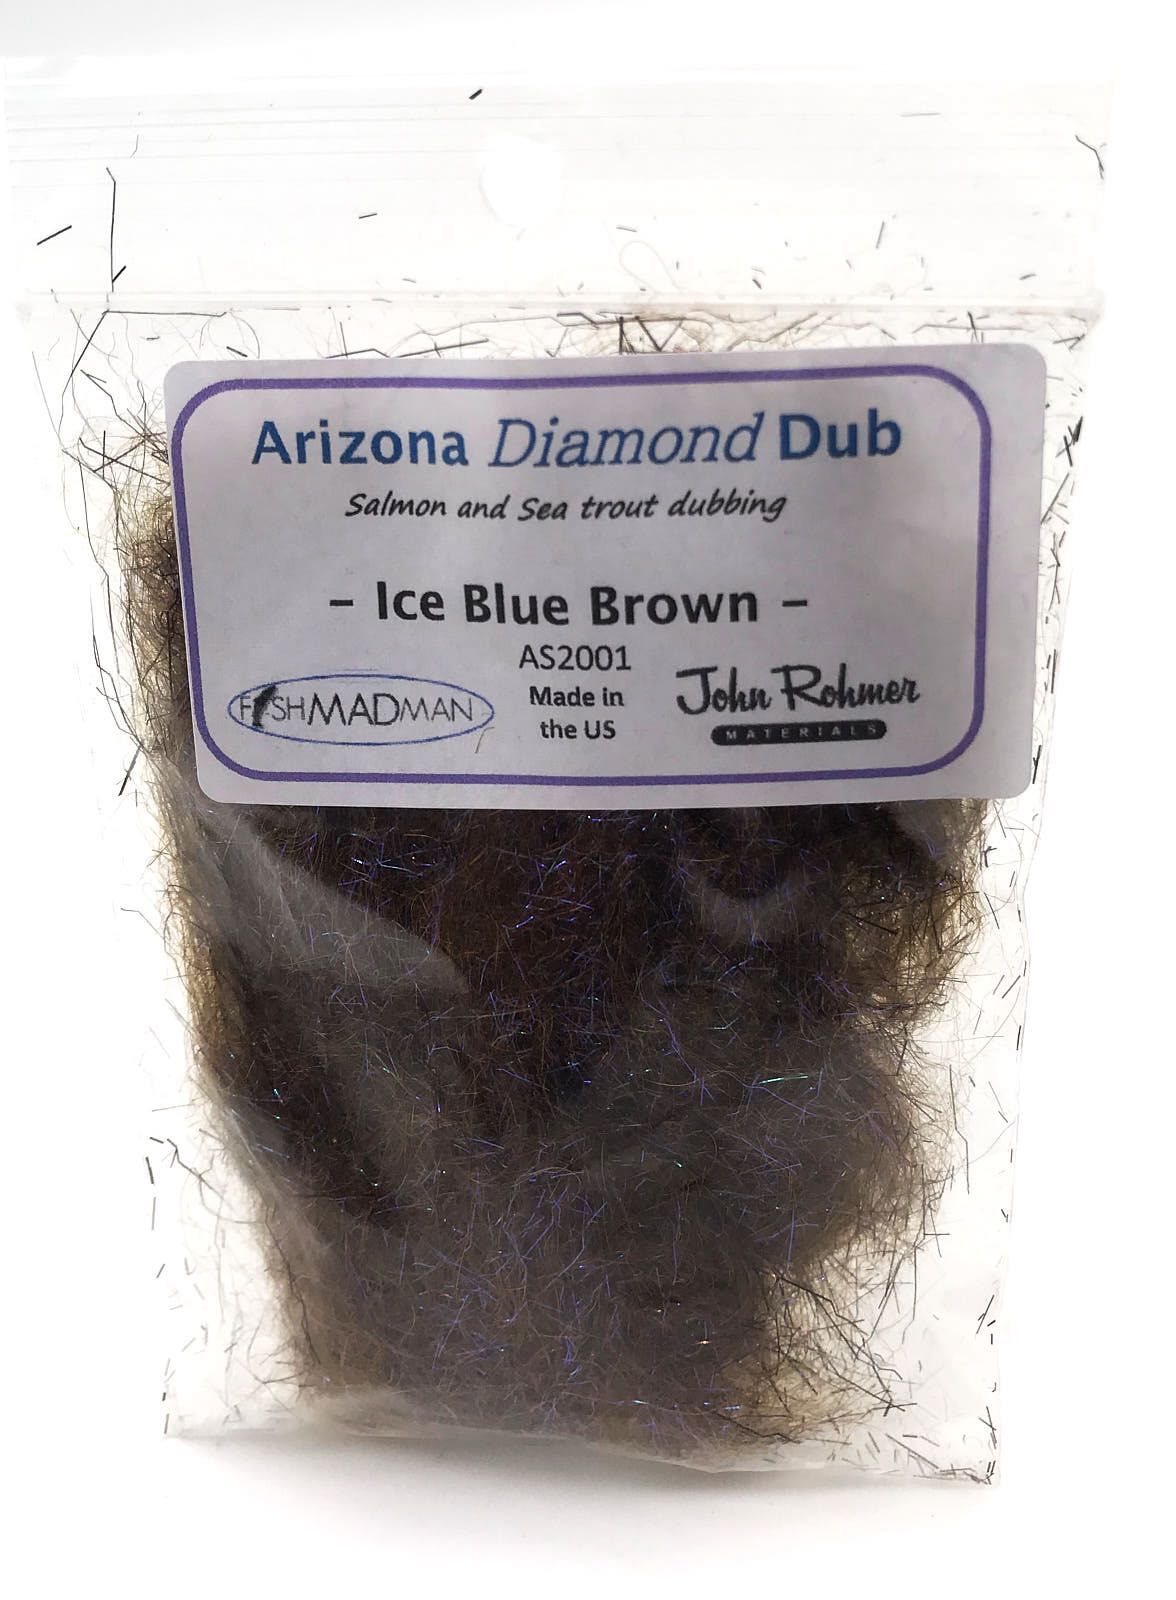 Arizona Diamond Dub Ice Blue Brown